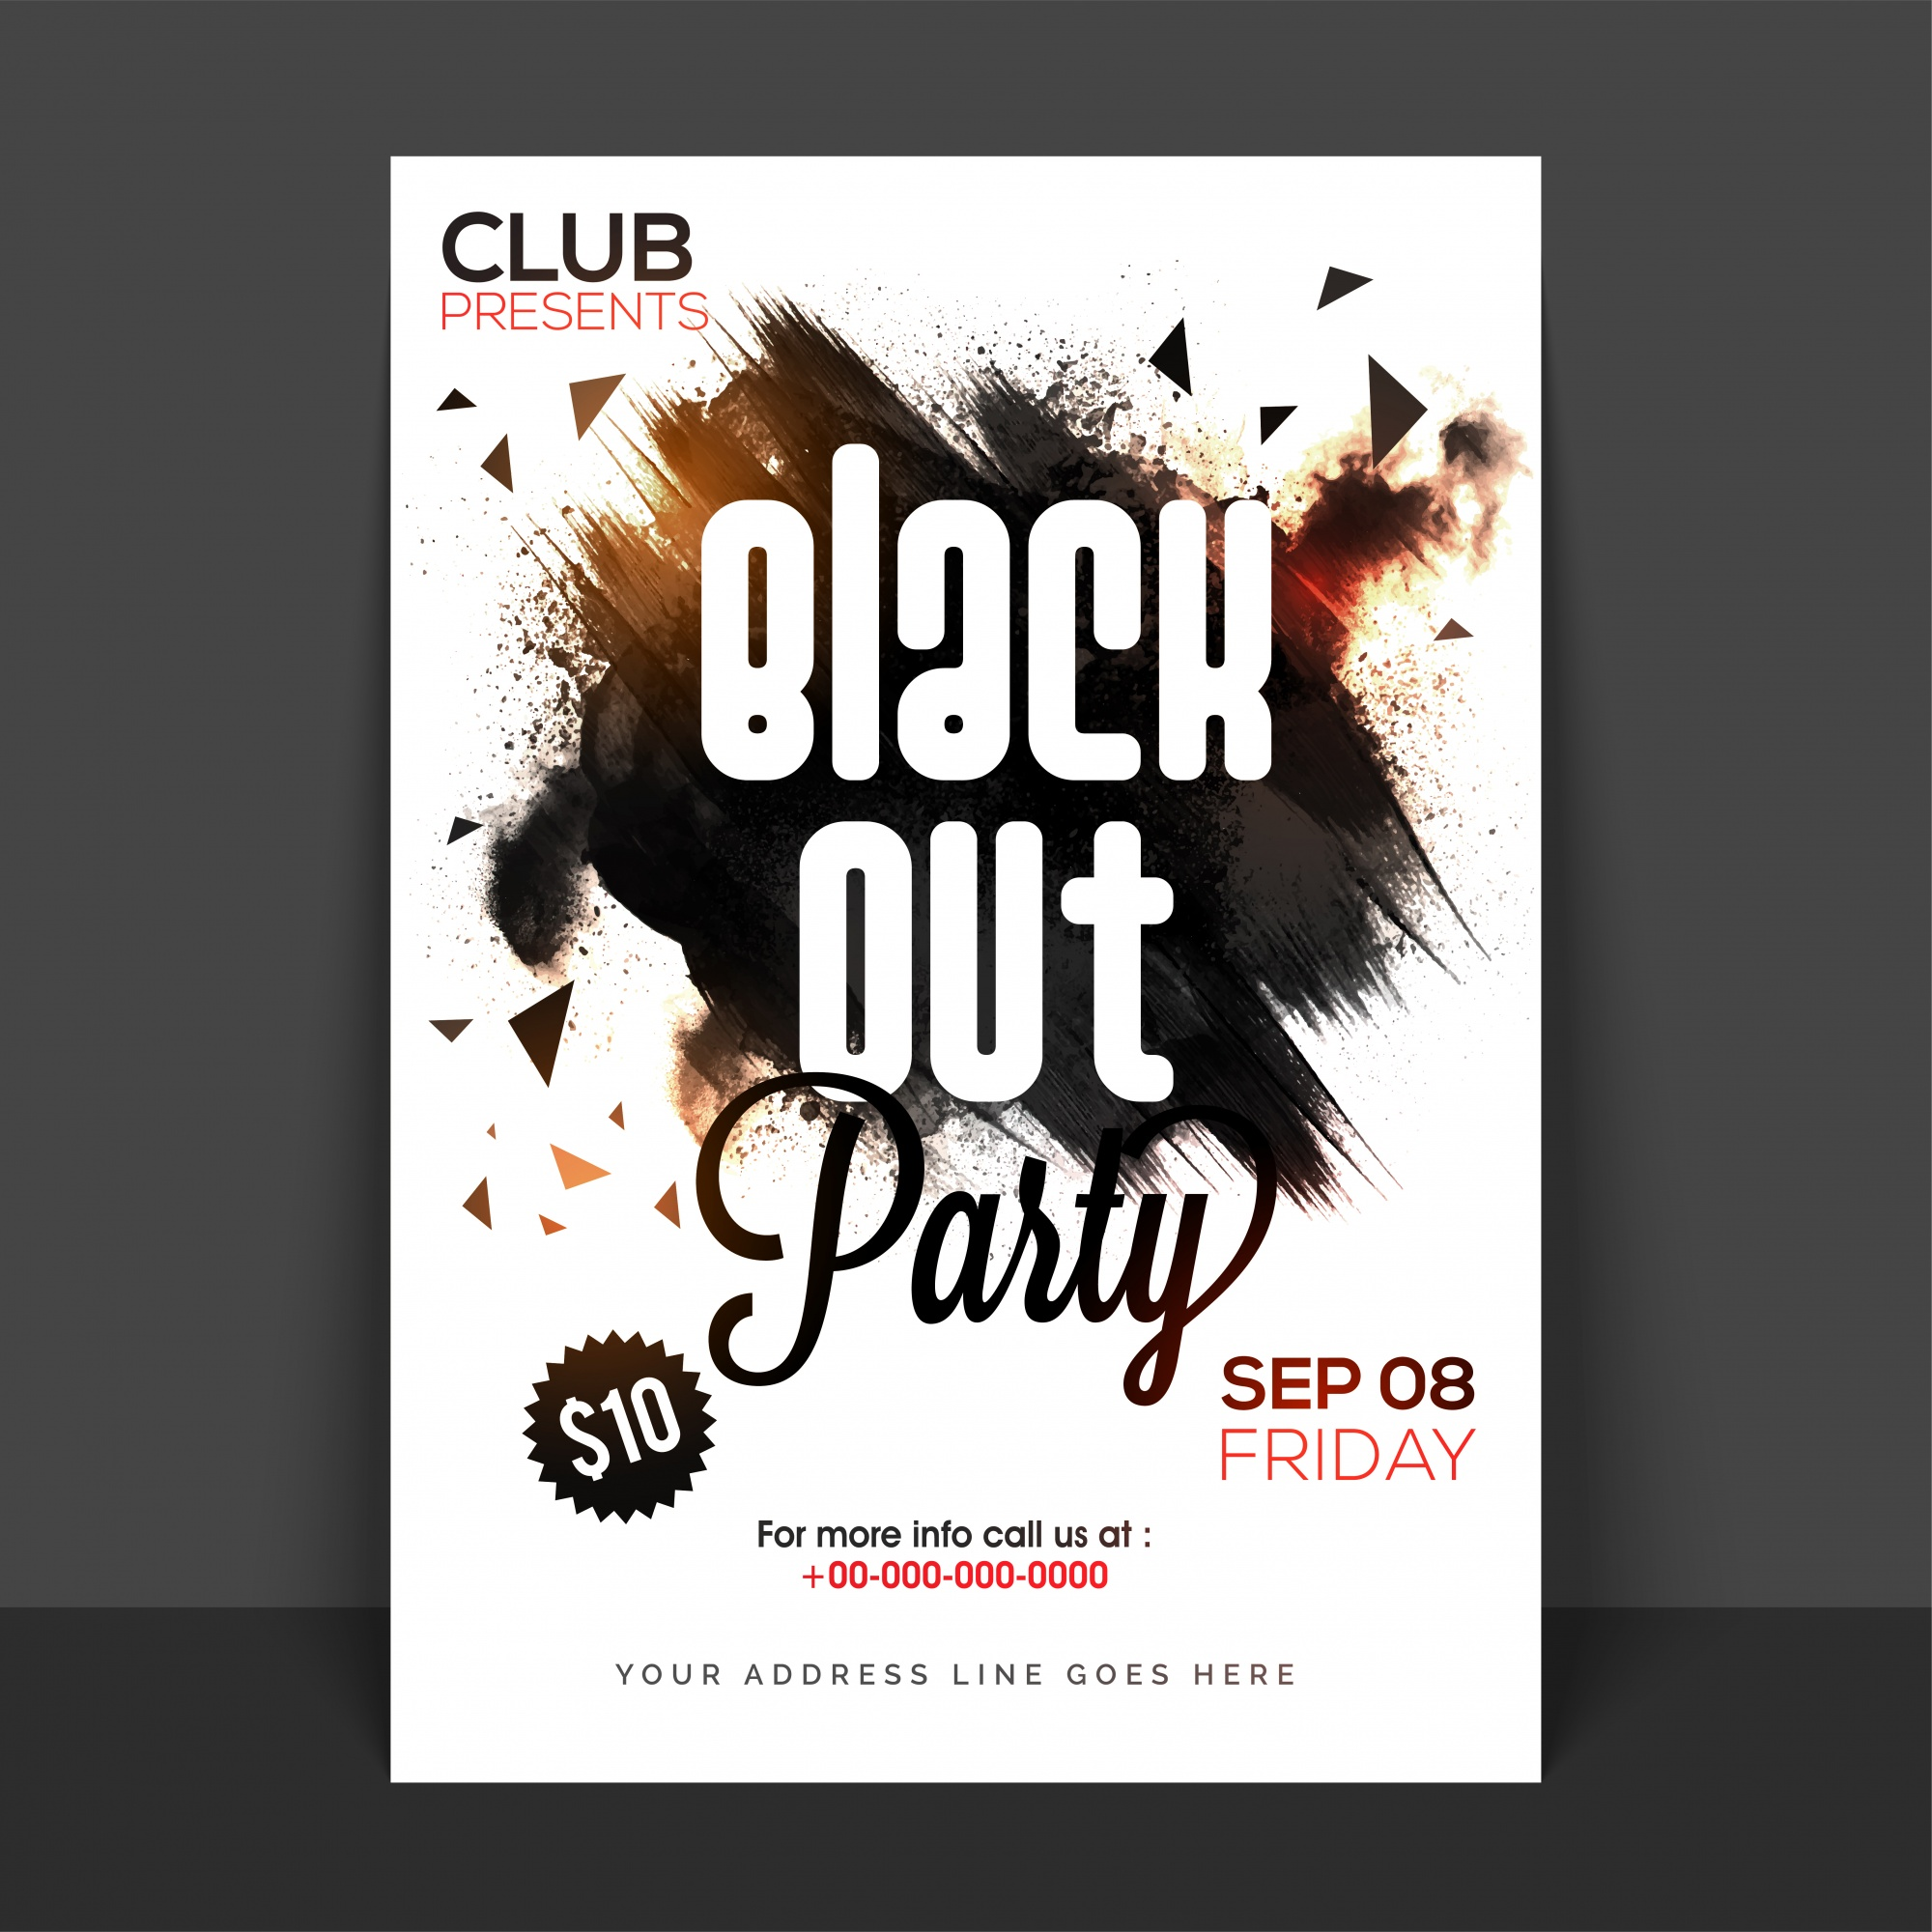 Black Out Party Poster, Banner или Flyer с абстрактными мазками кисти.